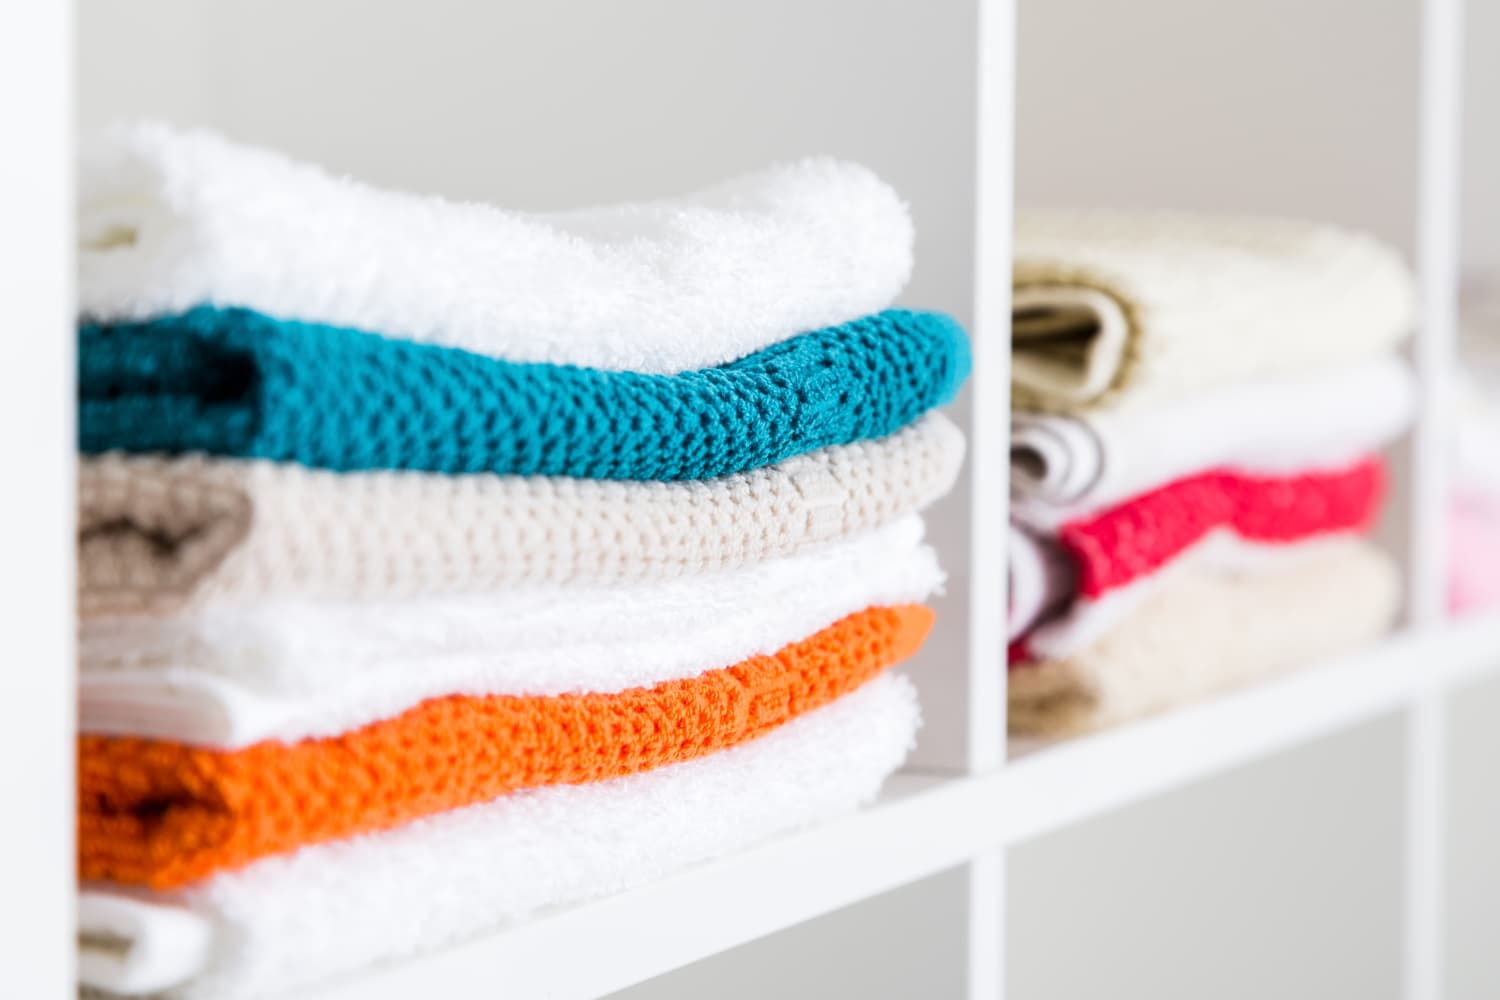 6 Things in Your Linen Closet You Should Get Rid of Right Now, According to Home Stagers